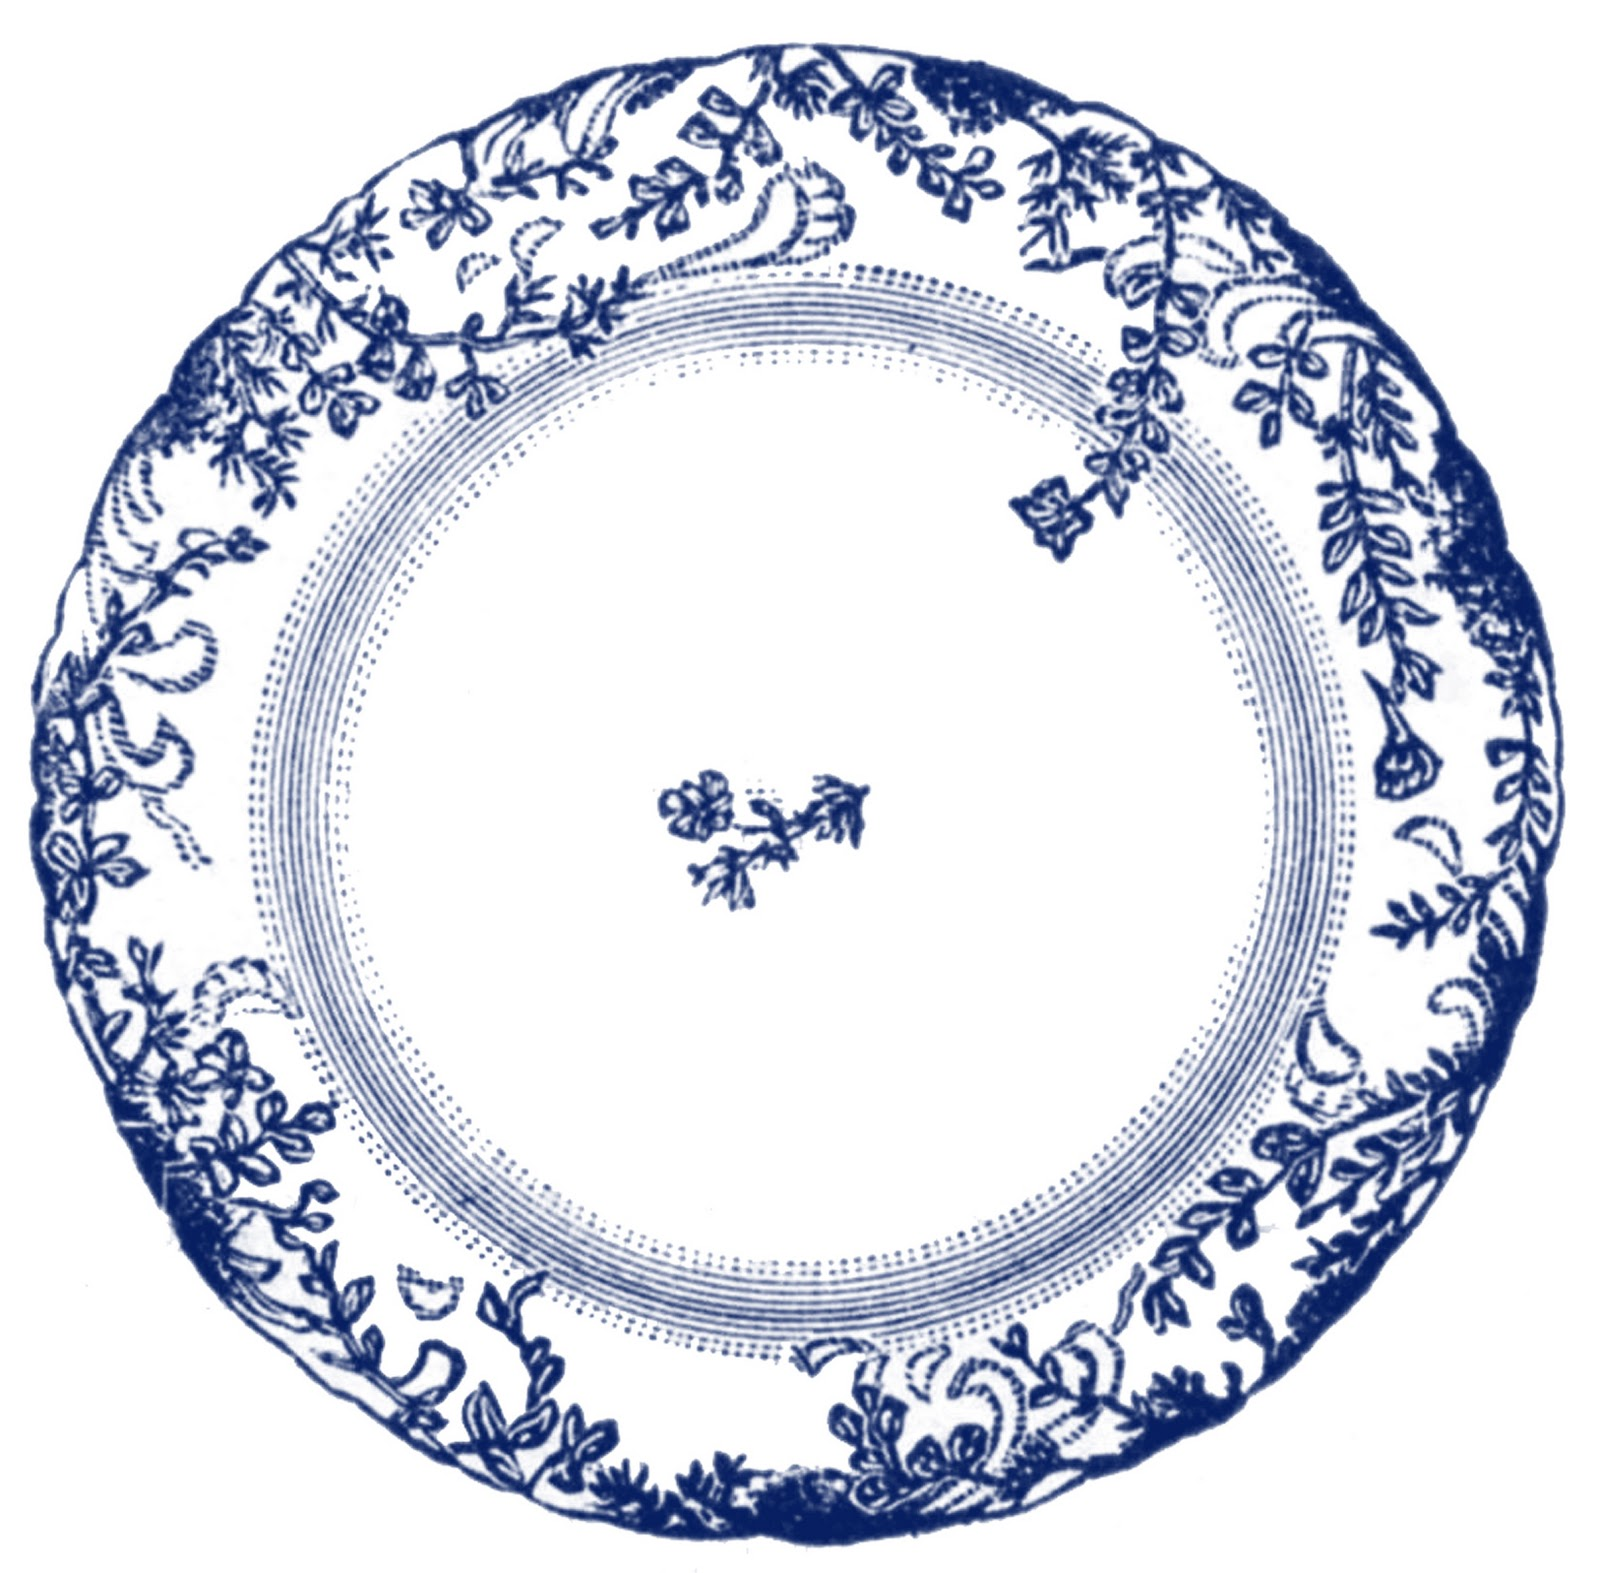 Vintage Clip Art Antique China Plate 4 Options The